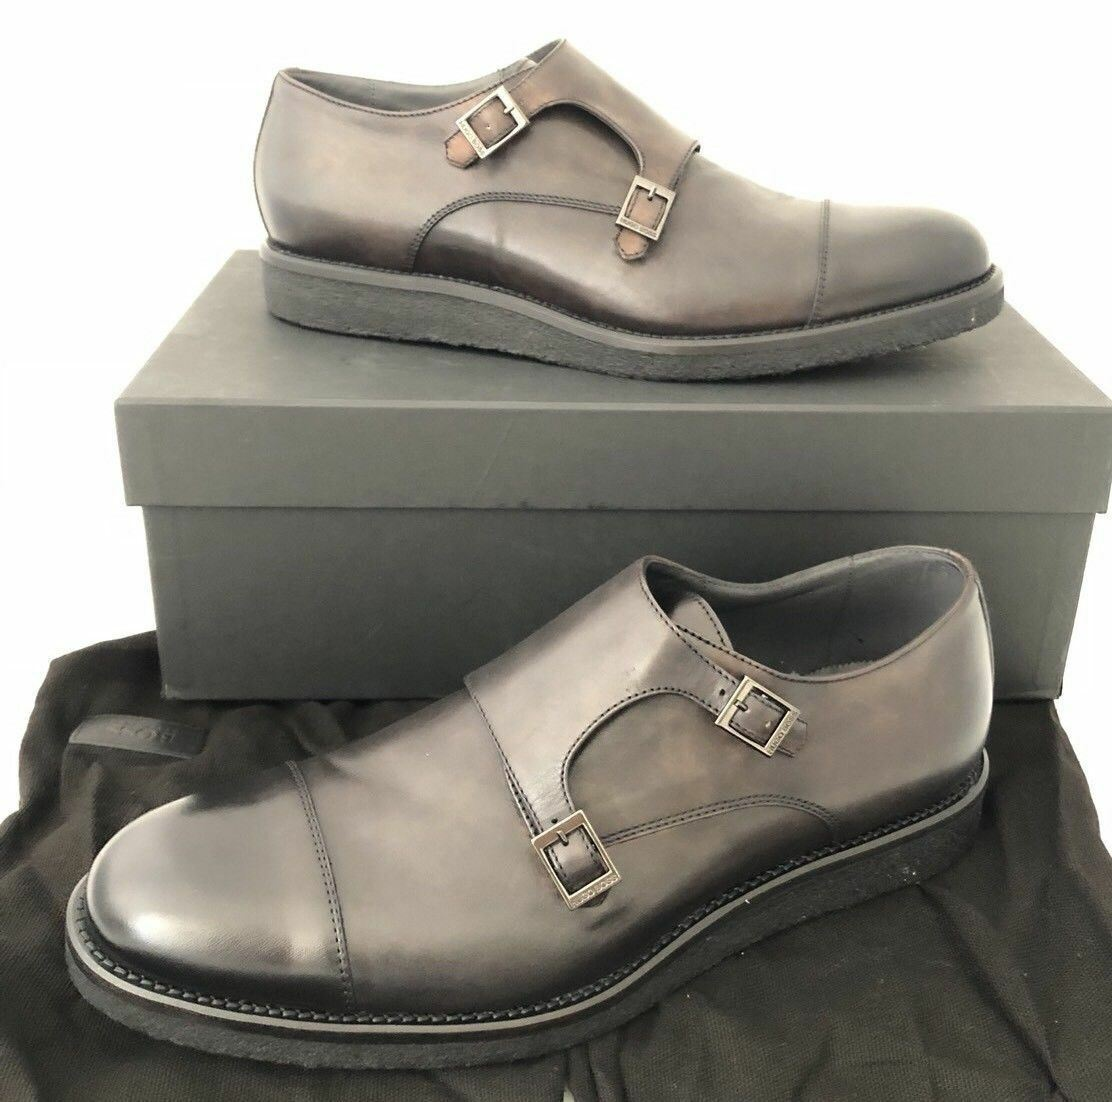 NIB $495 Boss Hugo Boss Aspio Mens Dark Gray Leather Shoes 10 US Italy 50298471